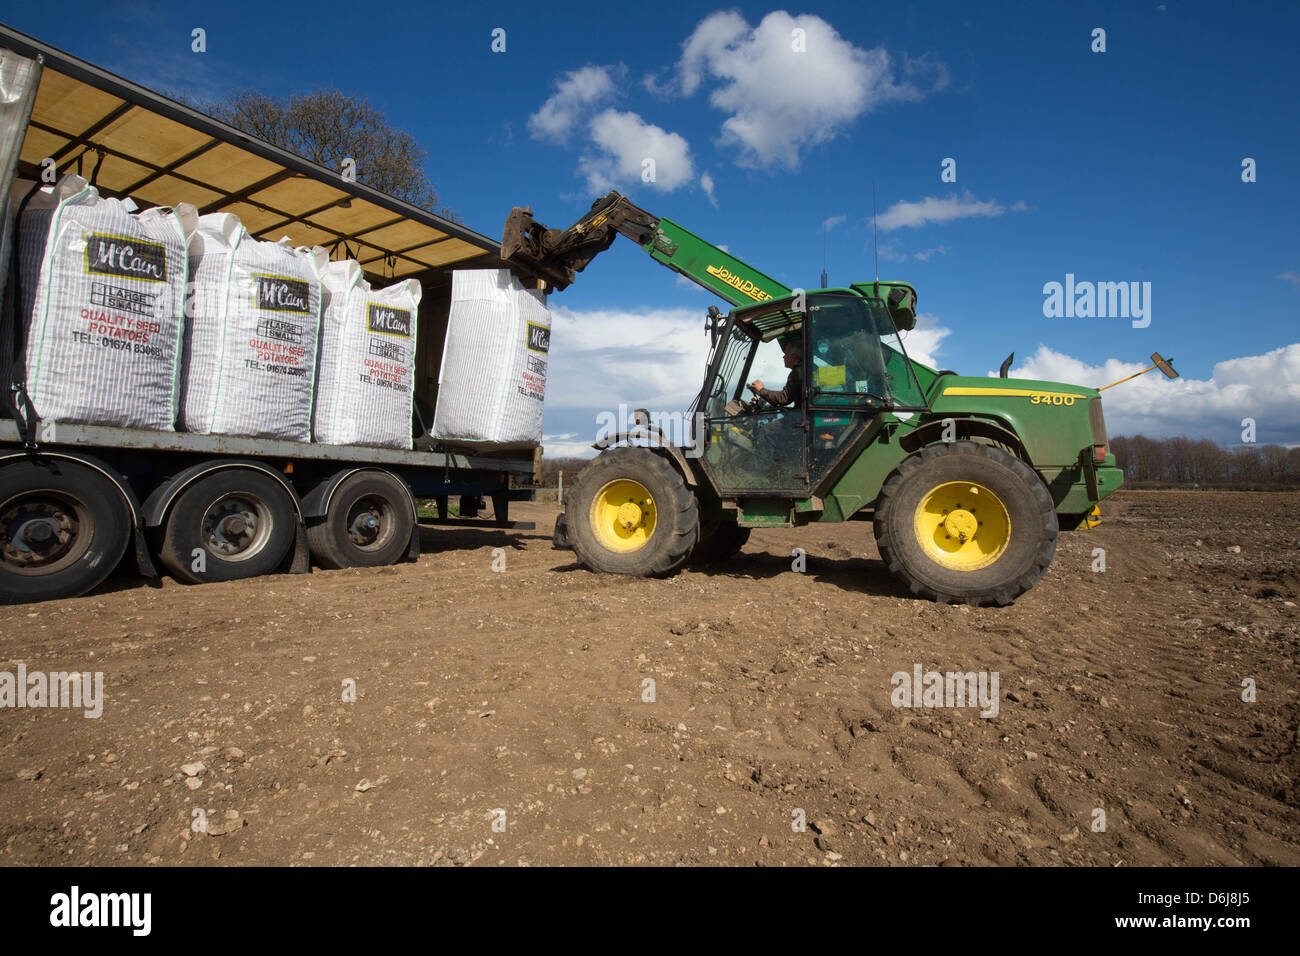 John Deere tele handler unloading bags of Scottish seed potatoes from a lorry - Stock Image